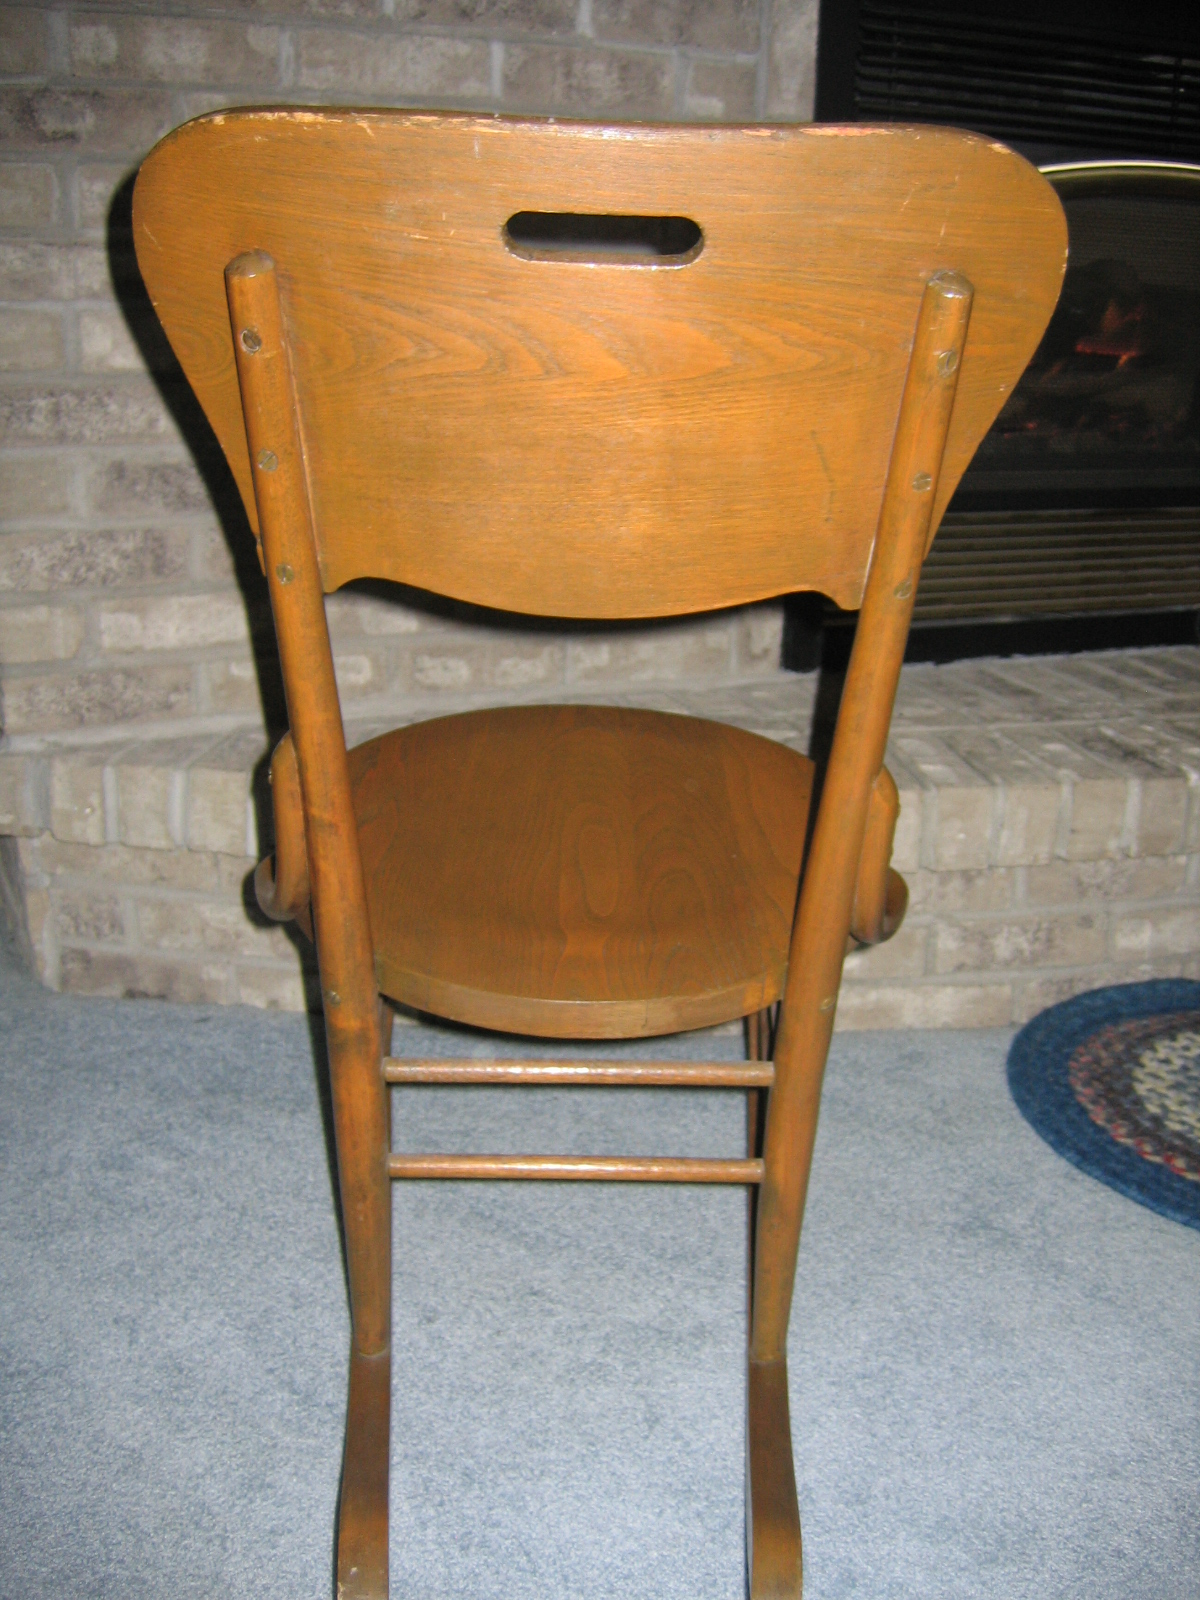 antique rocking chairs for sale chair leg caps vintage ladies knitting wood item 811